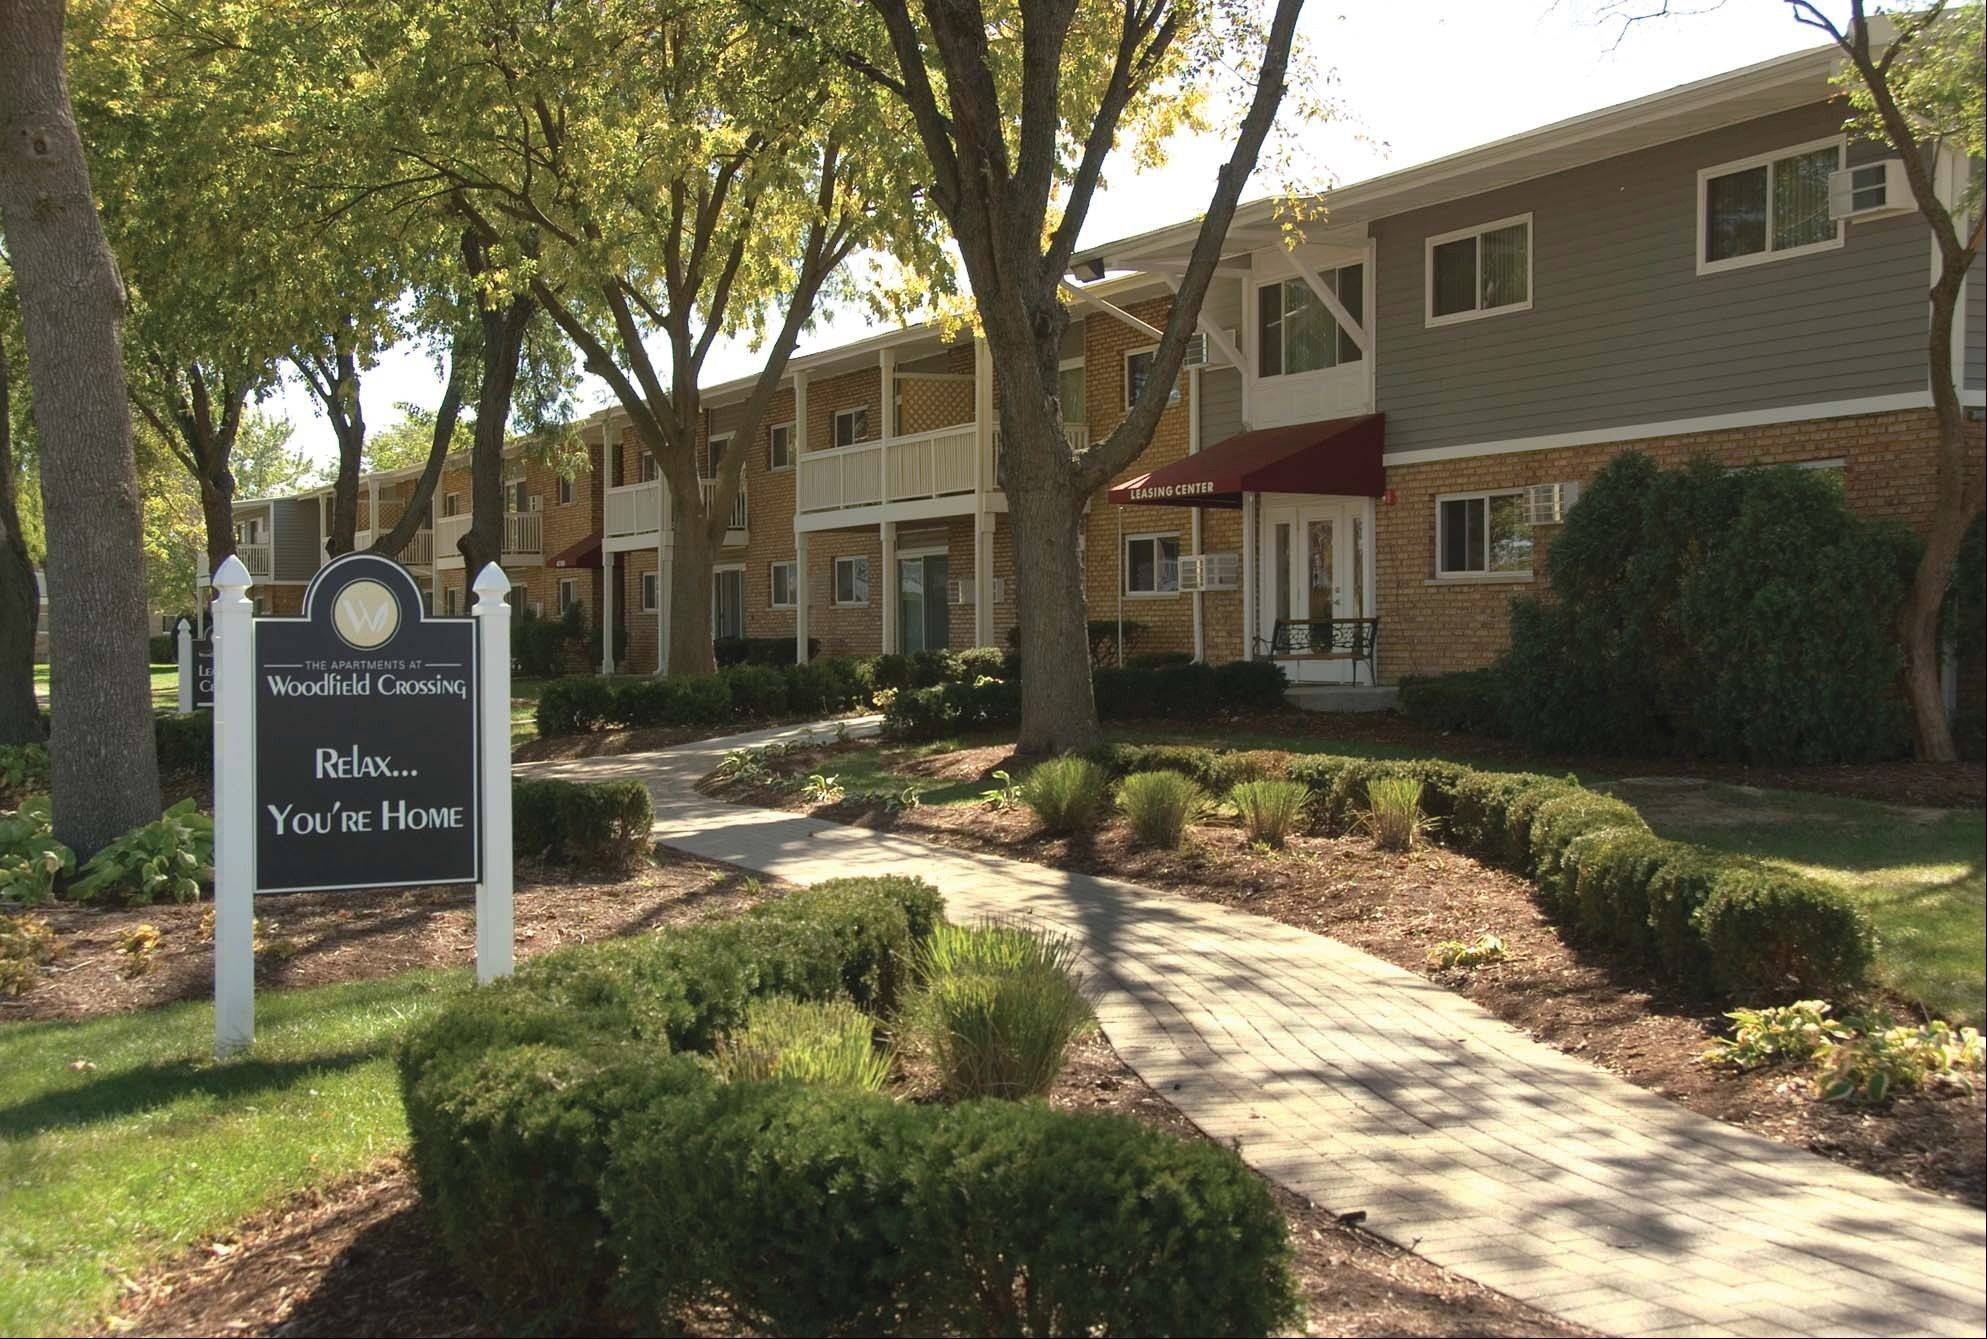 The Apartments at Woodfield Crossing in Rolling Meadows has a new owner, it was announced Tuesday. Mayor Tom Rooney said he hopes the new owner continue the work done in recent years to turn around the once troubled development.